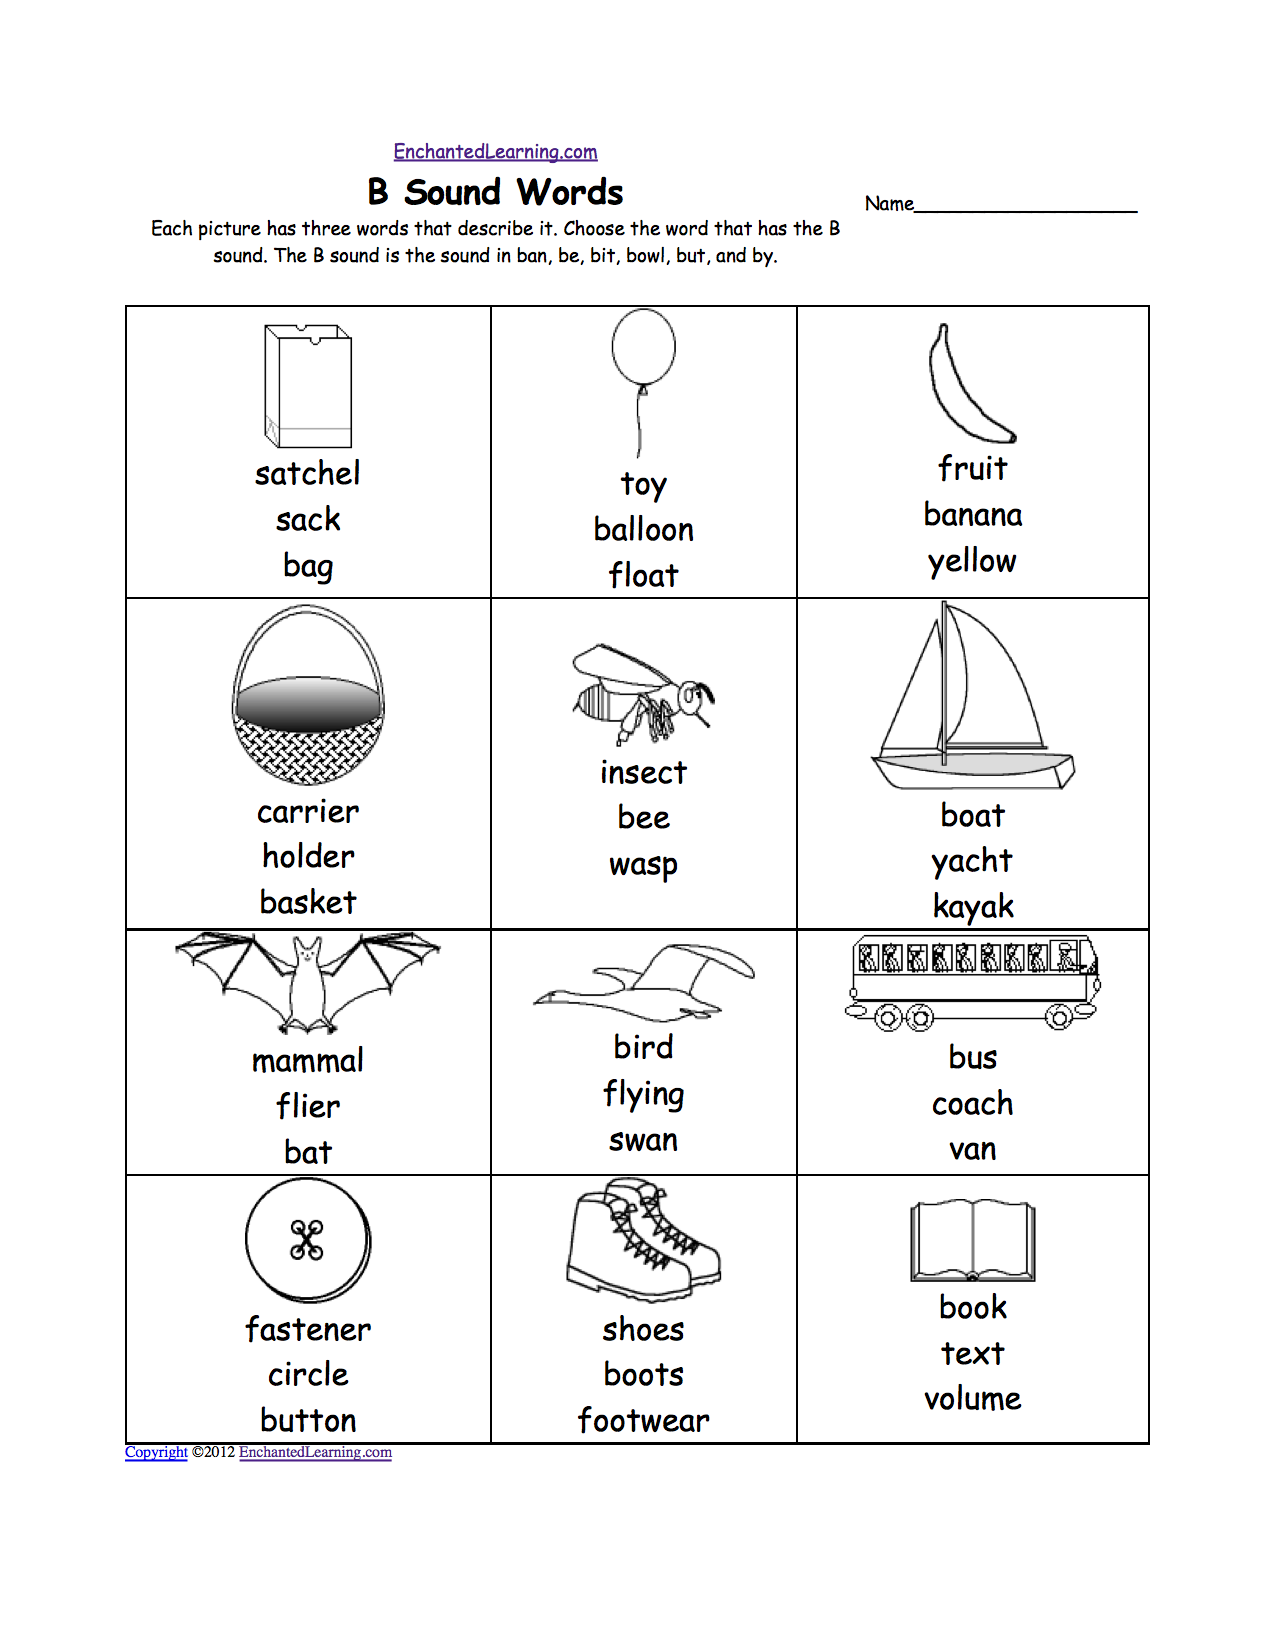 Aldiablosus  Stunning Phonics Worksheets Multiple Choice Worksheets To Print  With Interesting Quotbquot Sound Phonics Worksheet Multiple Choice Each Picture Has Three Words That Describe It Choose The Word That Has A Quotbquot Sound The Quotbquot Sound Is The Sound  With Alluring Reception Worksheets Literacy Also Homeschool Worksheet In Addition English Grammer Worksheet And Worksheet On Simple Sentences As Well As Grade  Math Addition And Subtraction Worksheets Additionally Personification Worksheets Rd Grade From Enchantedlearningcom With Aldiablosus  Interesting Phonics Worksheets Multiple Choice Worksheets To Print  With Alluring Quotbquot Sound Phonics Worksheet Multiple Choice Each Picture Has Three Words That Describe It Choose The Word That Has A Quotbquot Sound The Quotbquot Sound Is The Sound  And Stunning Reception Worksheets Literacy Also Homeschool Worksheet In Addition English Grammer Worksheet From Enchantedlearningcom